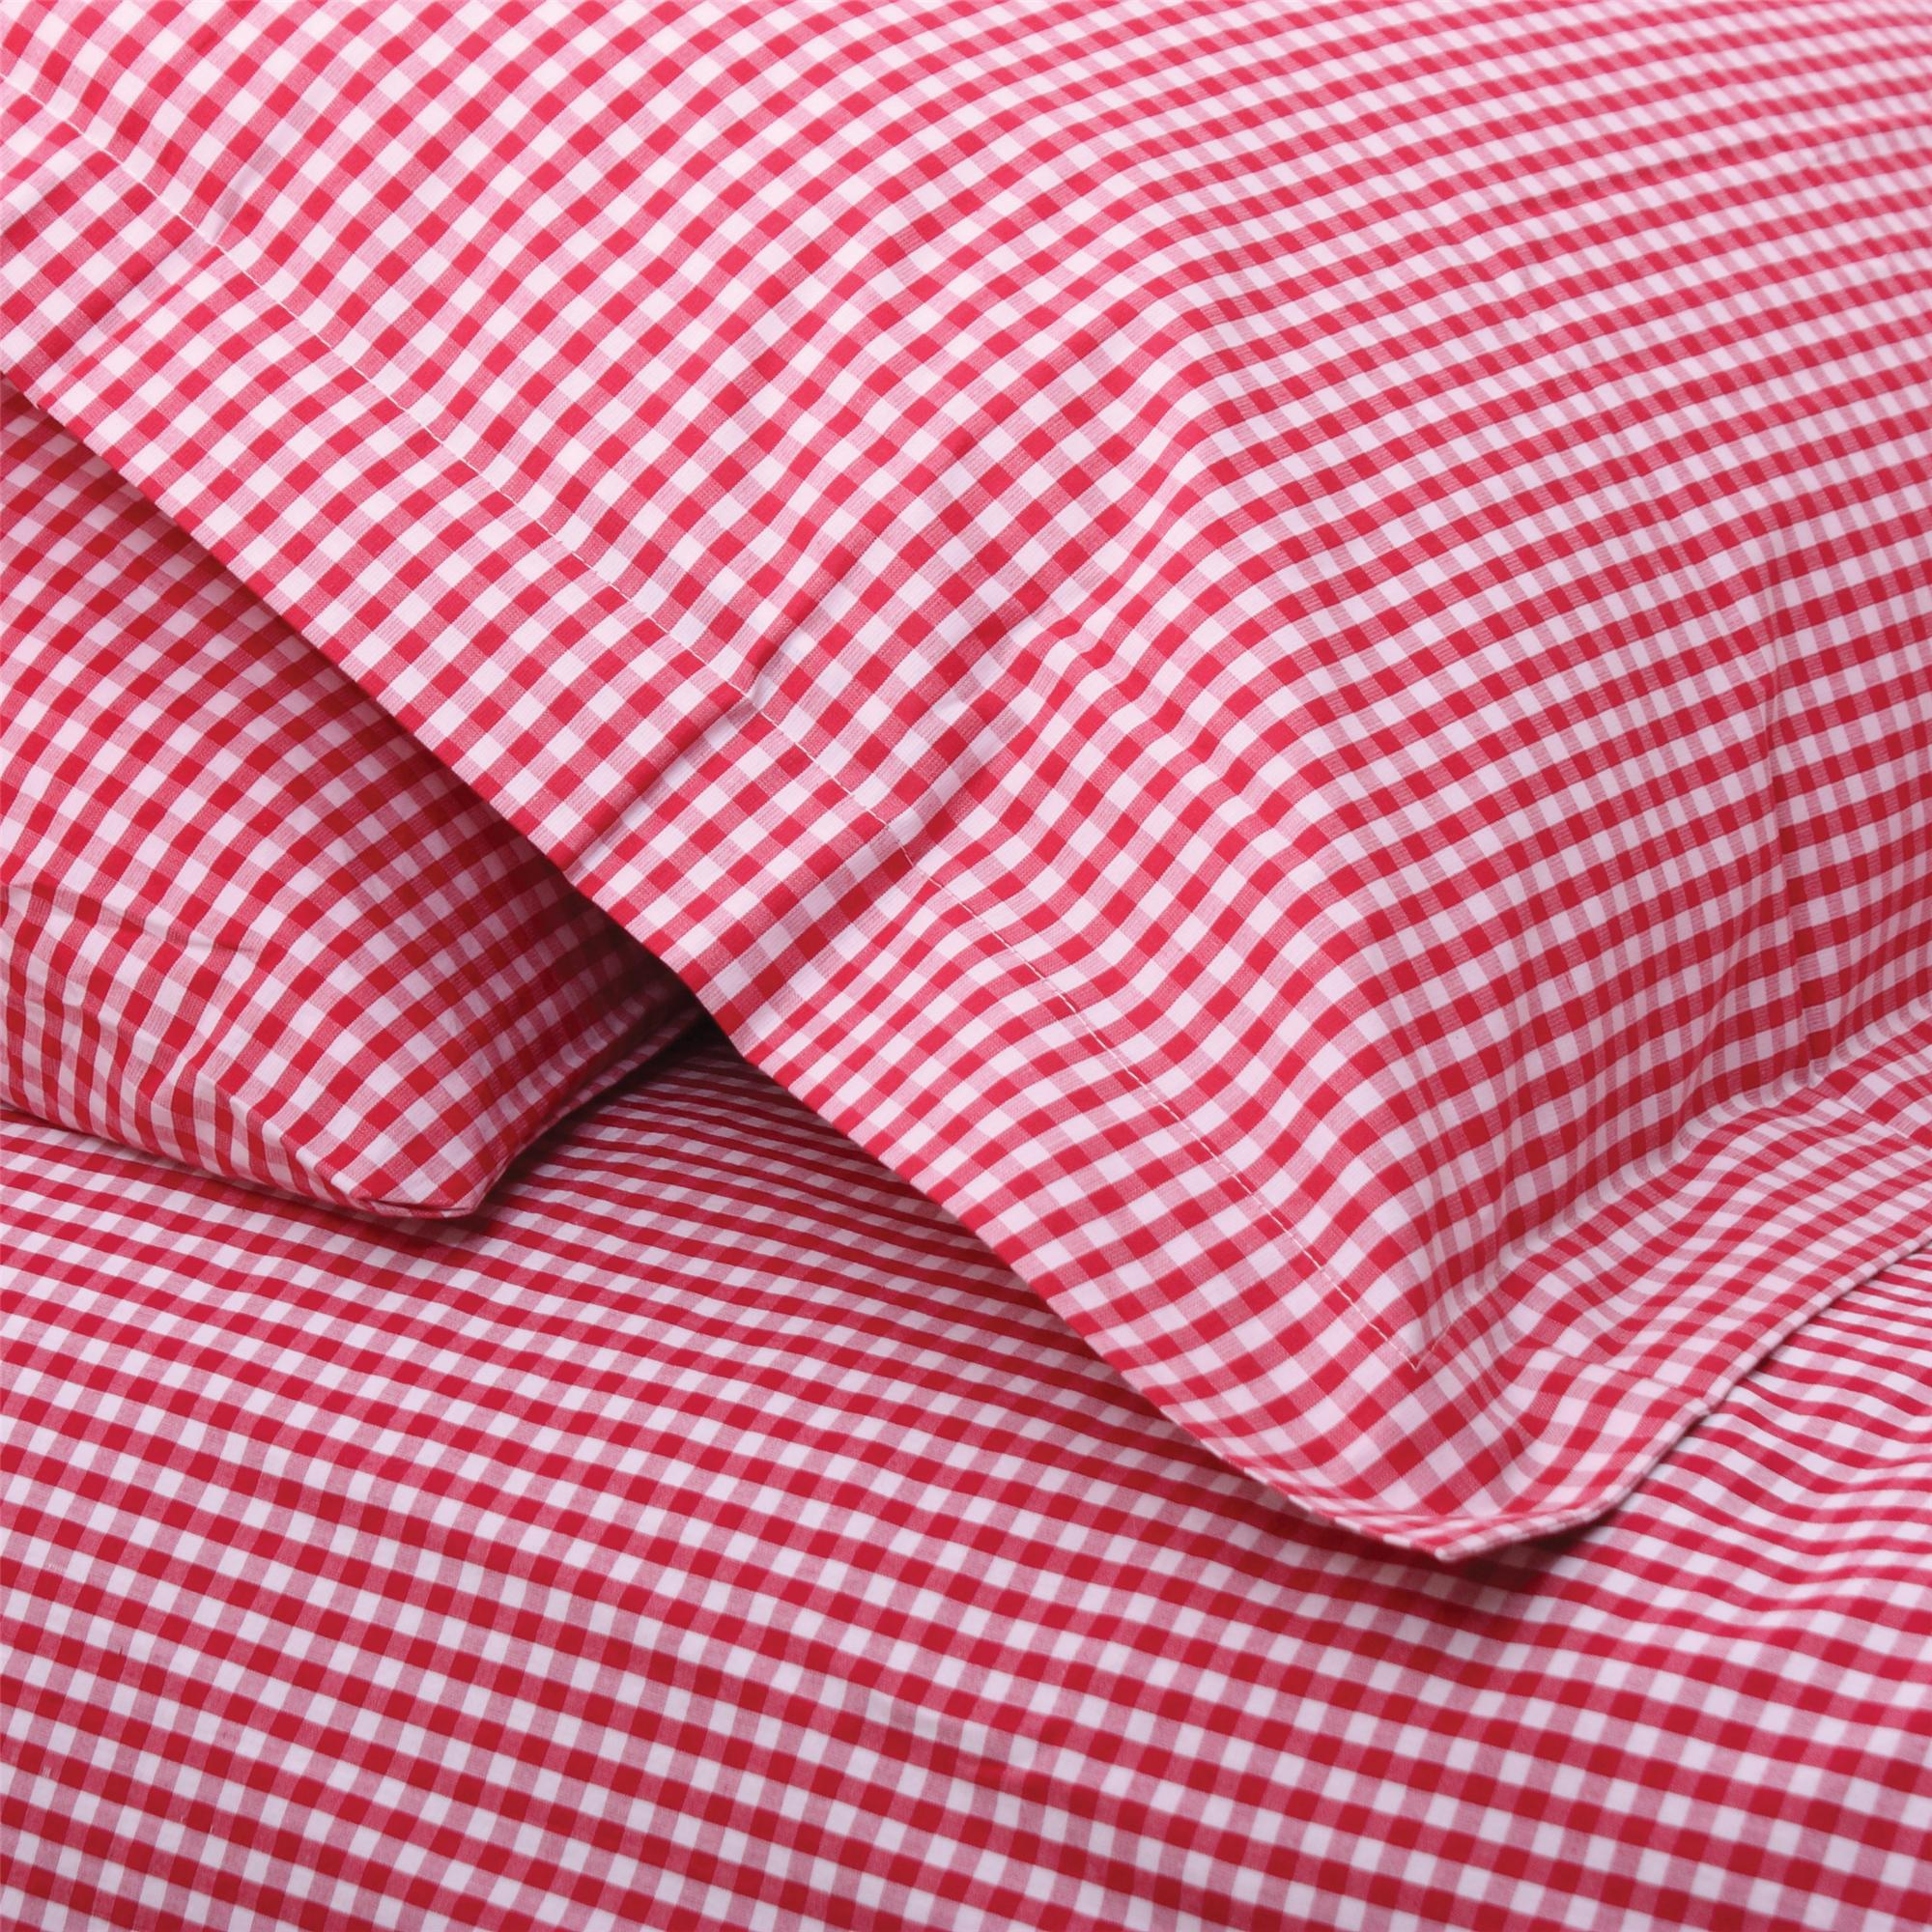 Red Gingham Duvet Set (Single)